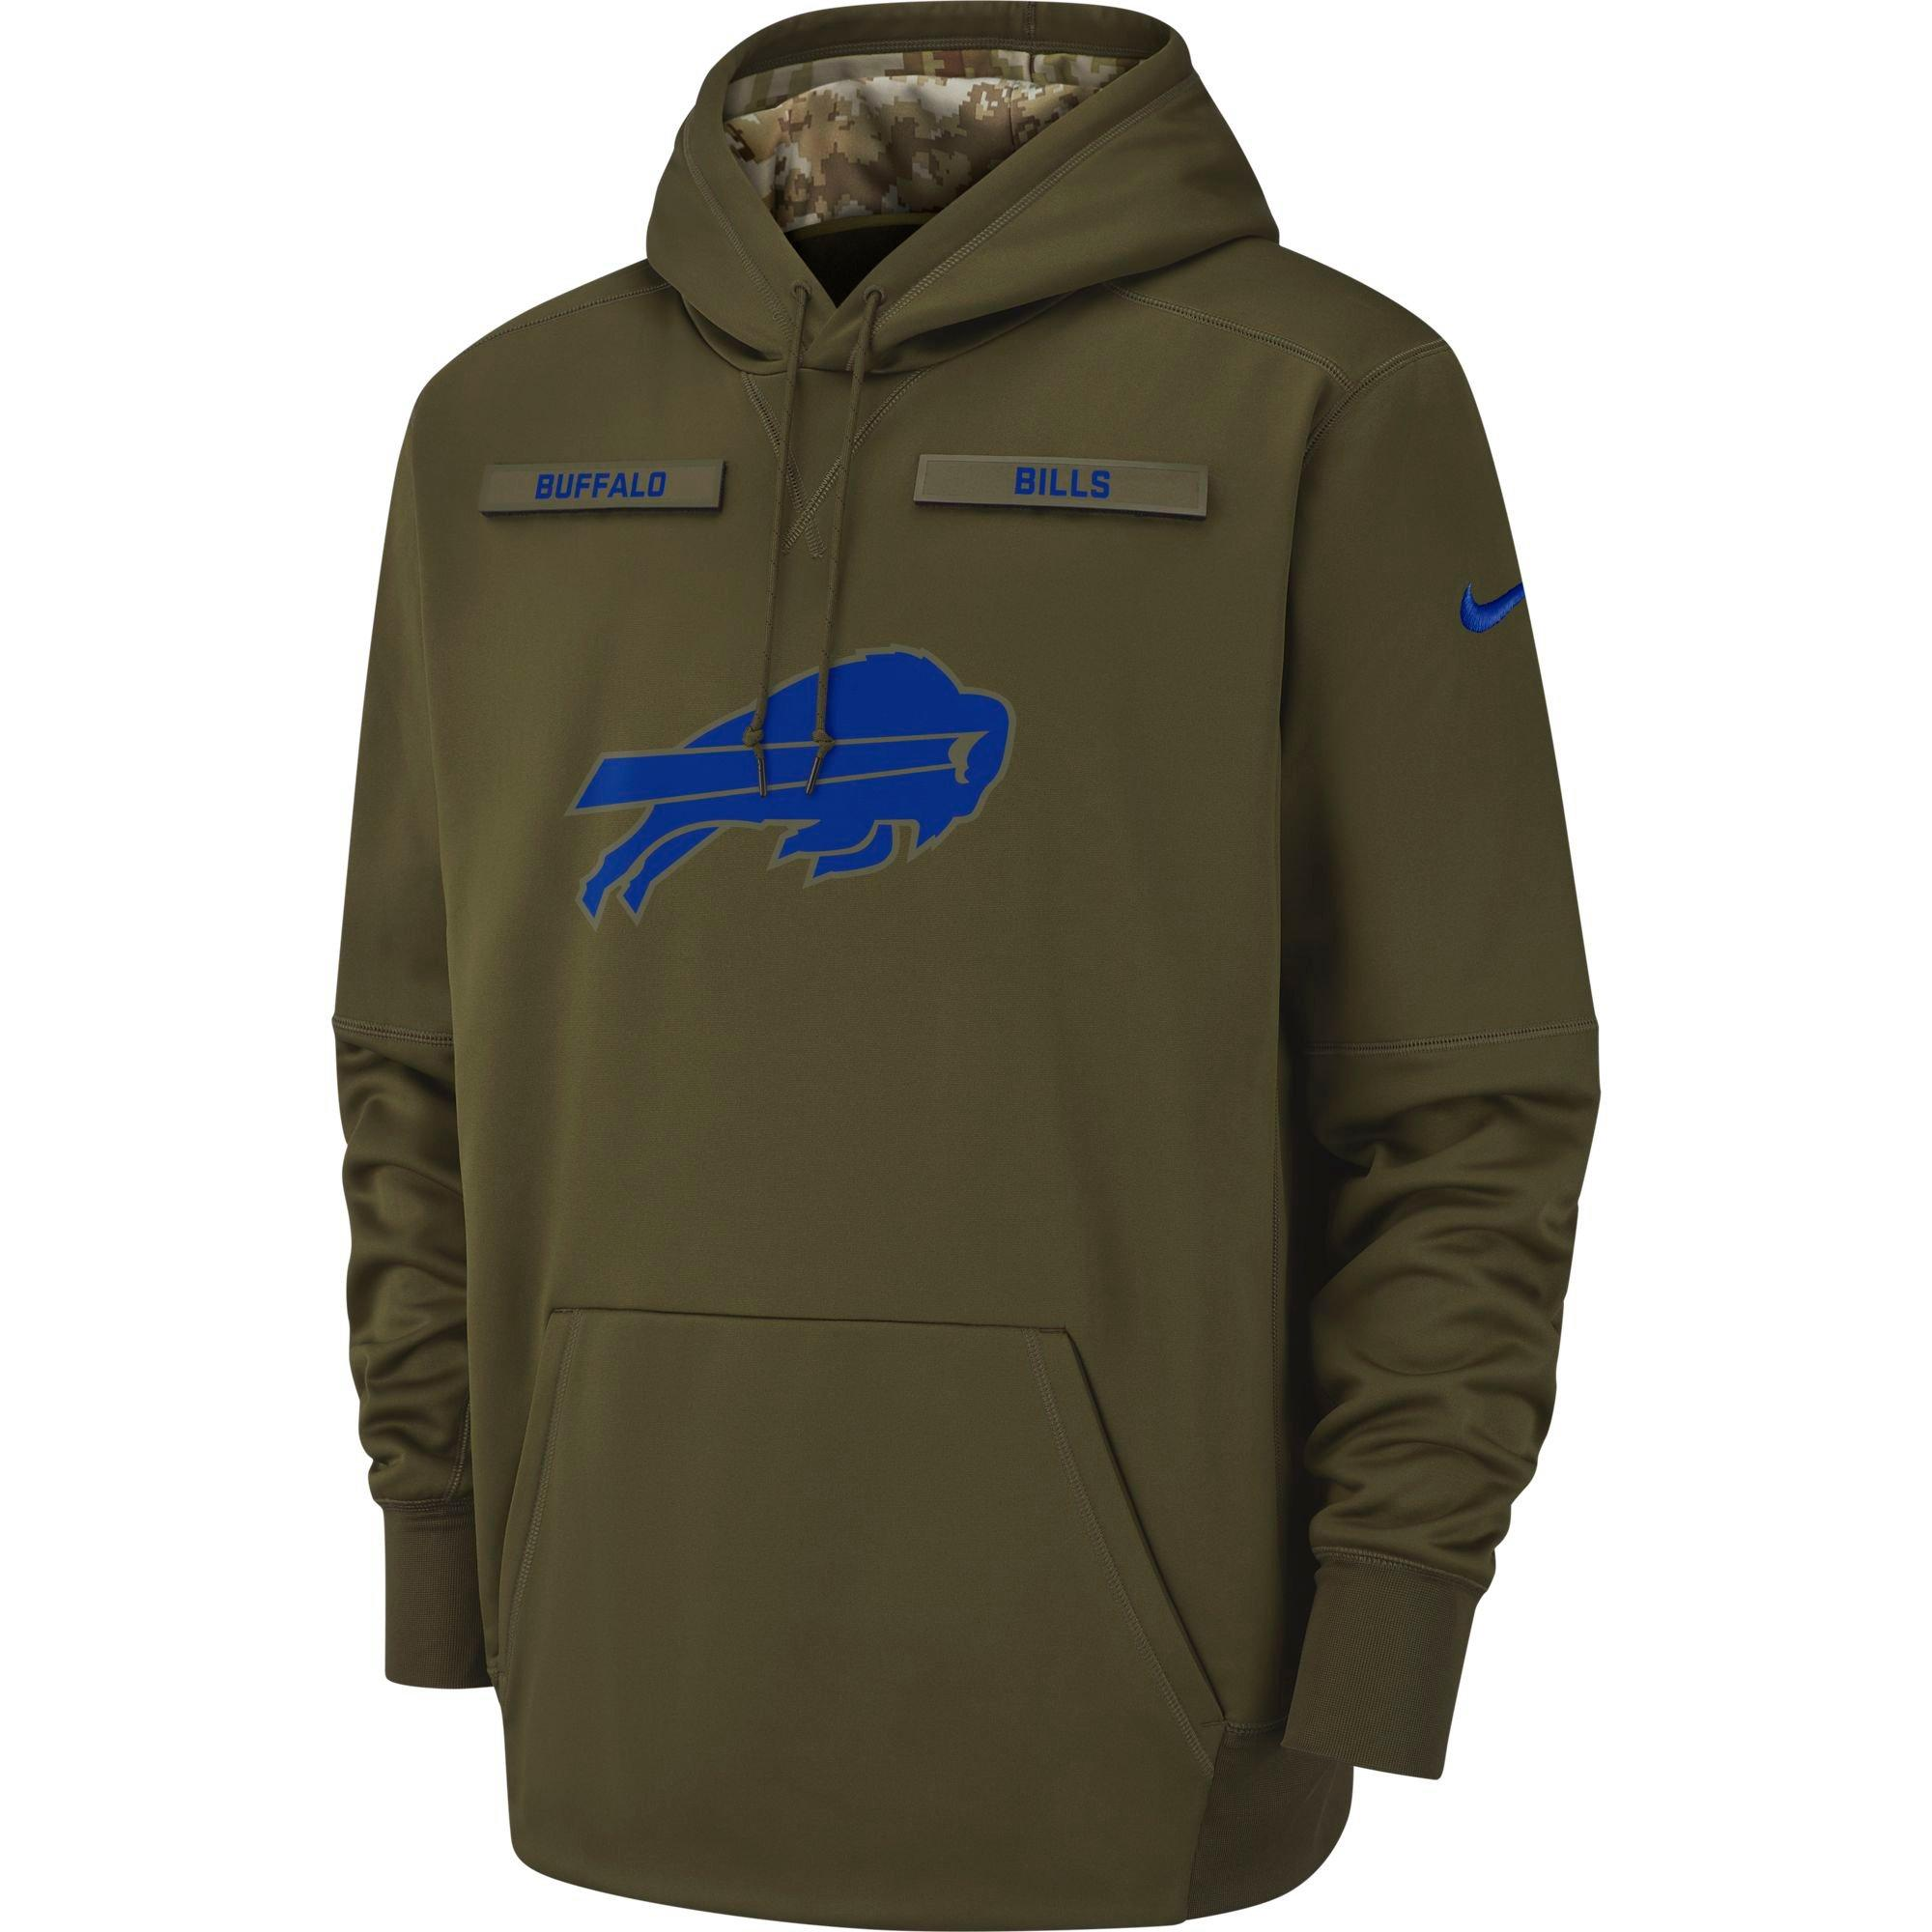 official photos 0a292 553df salute to service bills hoodie